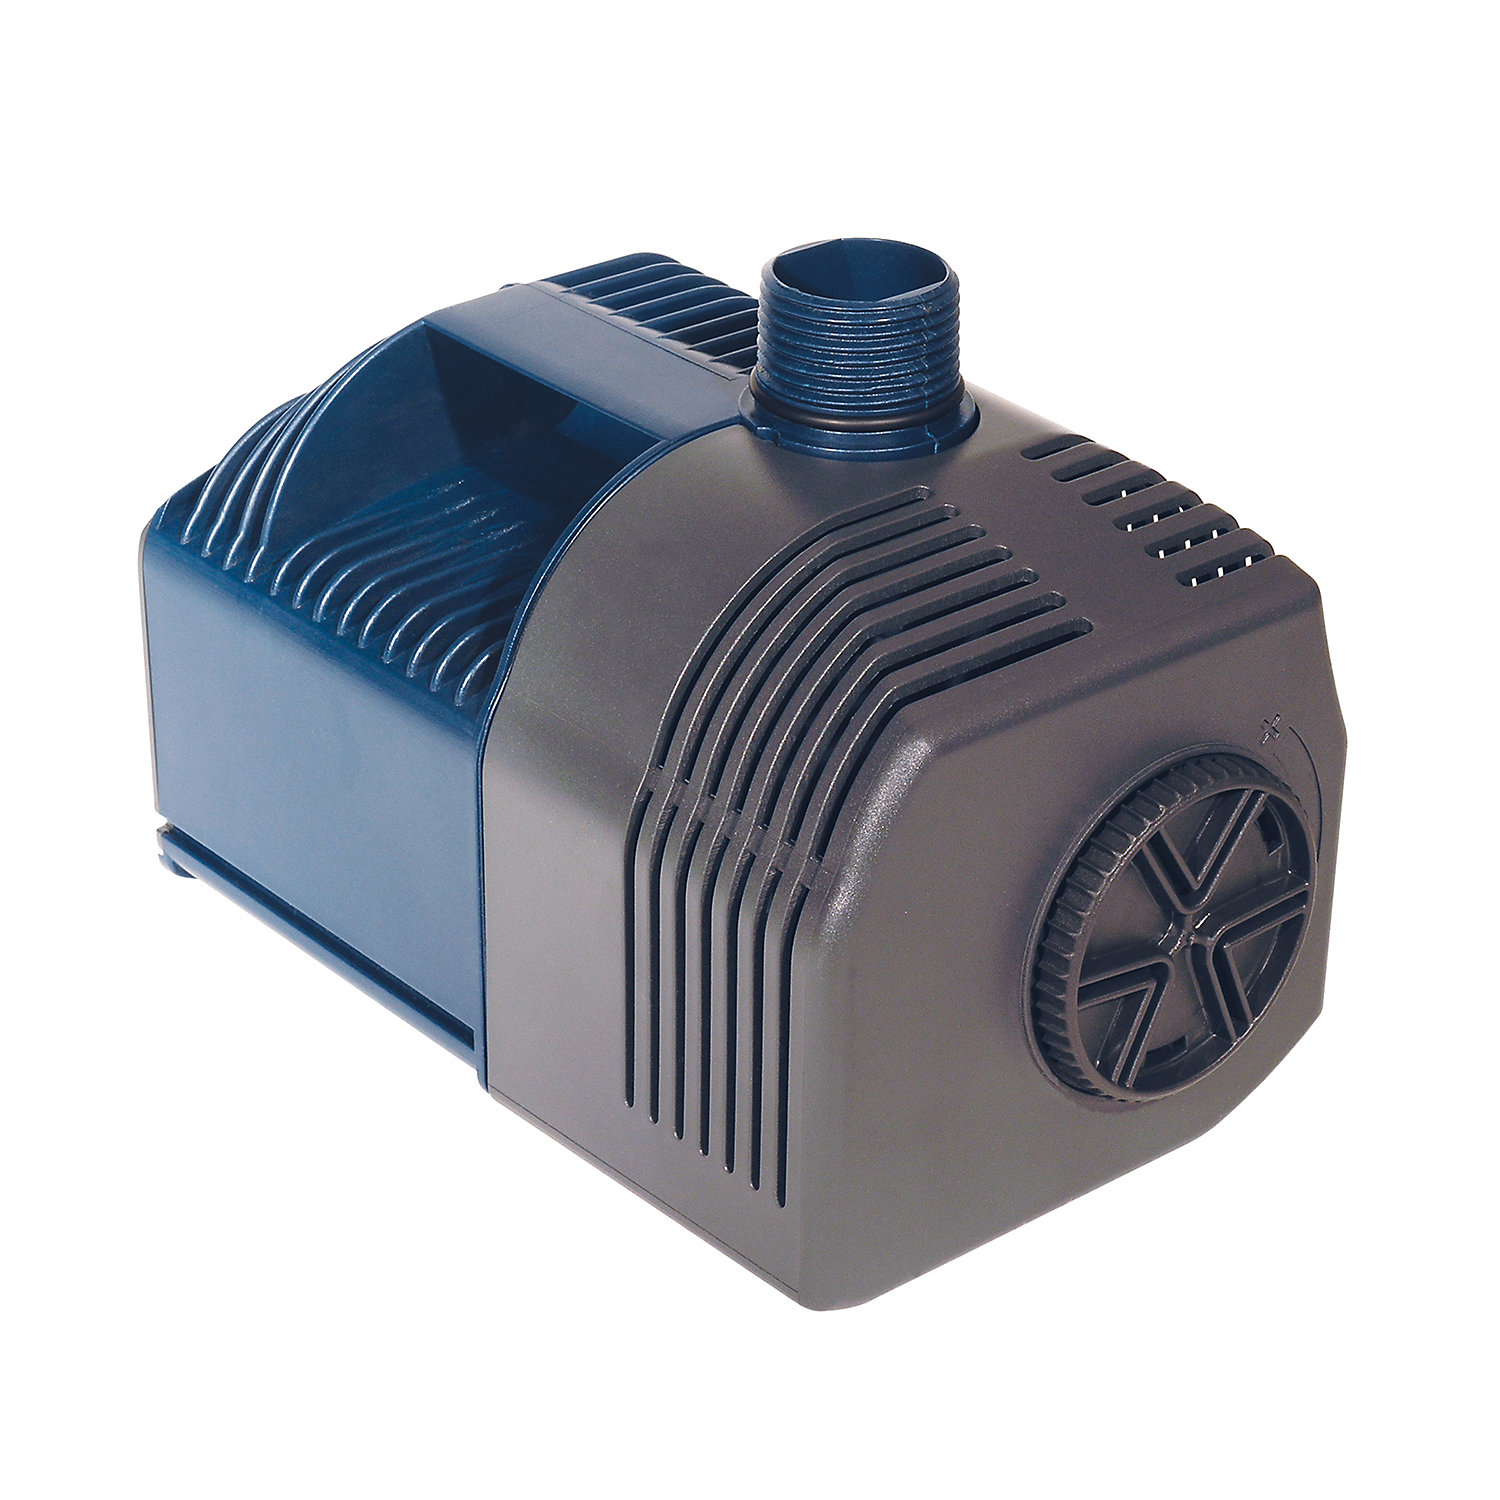 Lifegard Aquatics Quiet One Pro Series 6000 Aquarium Pump Blue